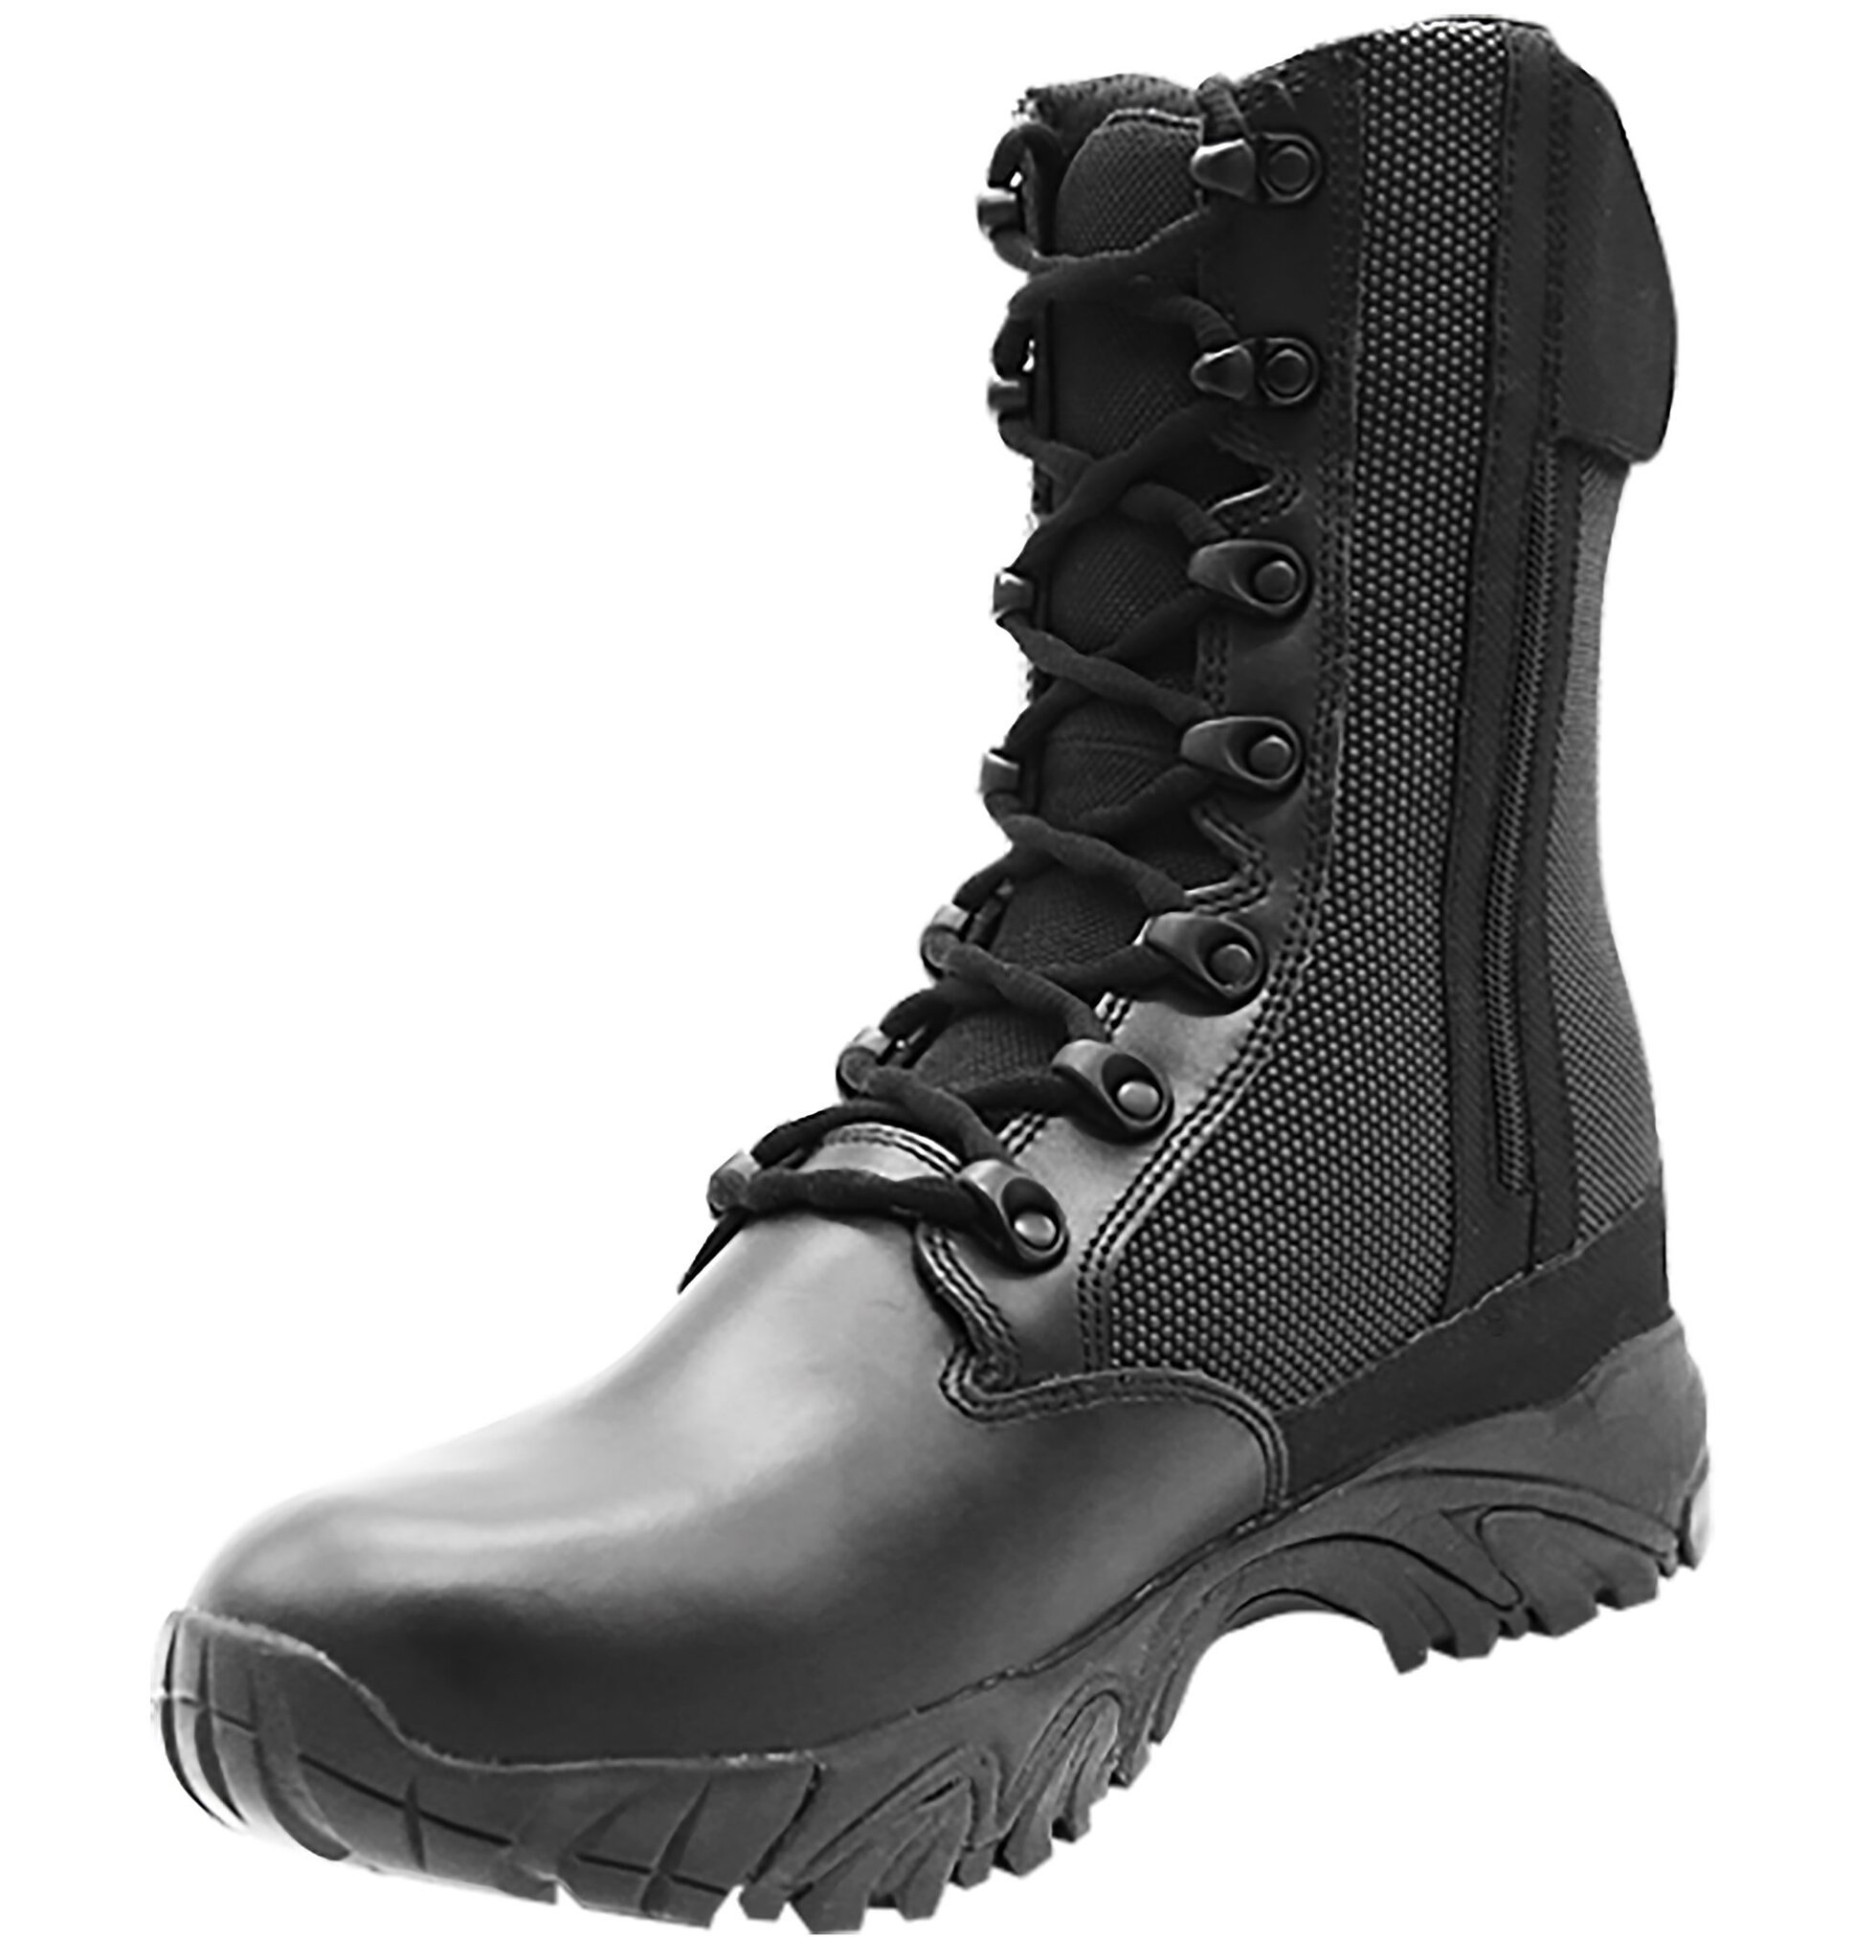 ALTAI Waterproof Tactical Boots - Made in the USA - MFT100-Z_2